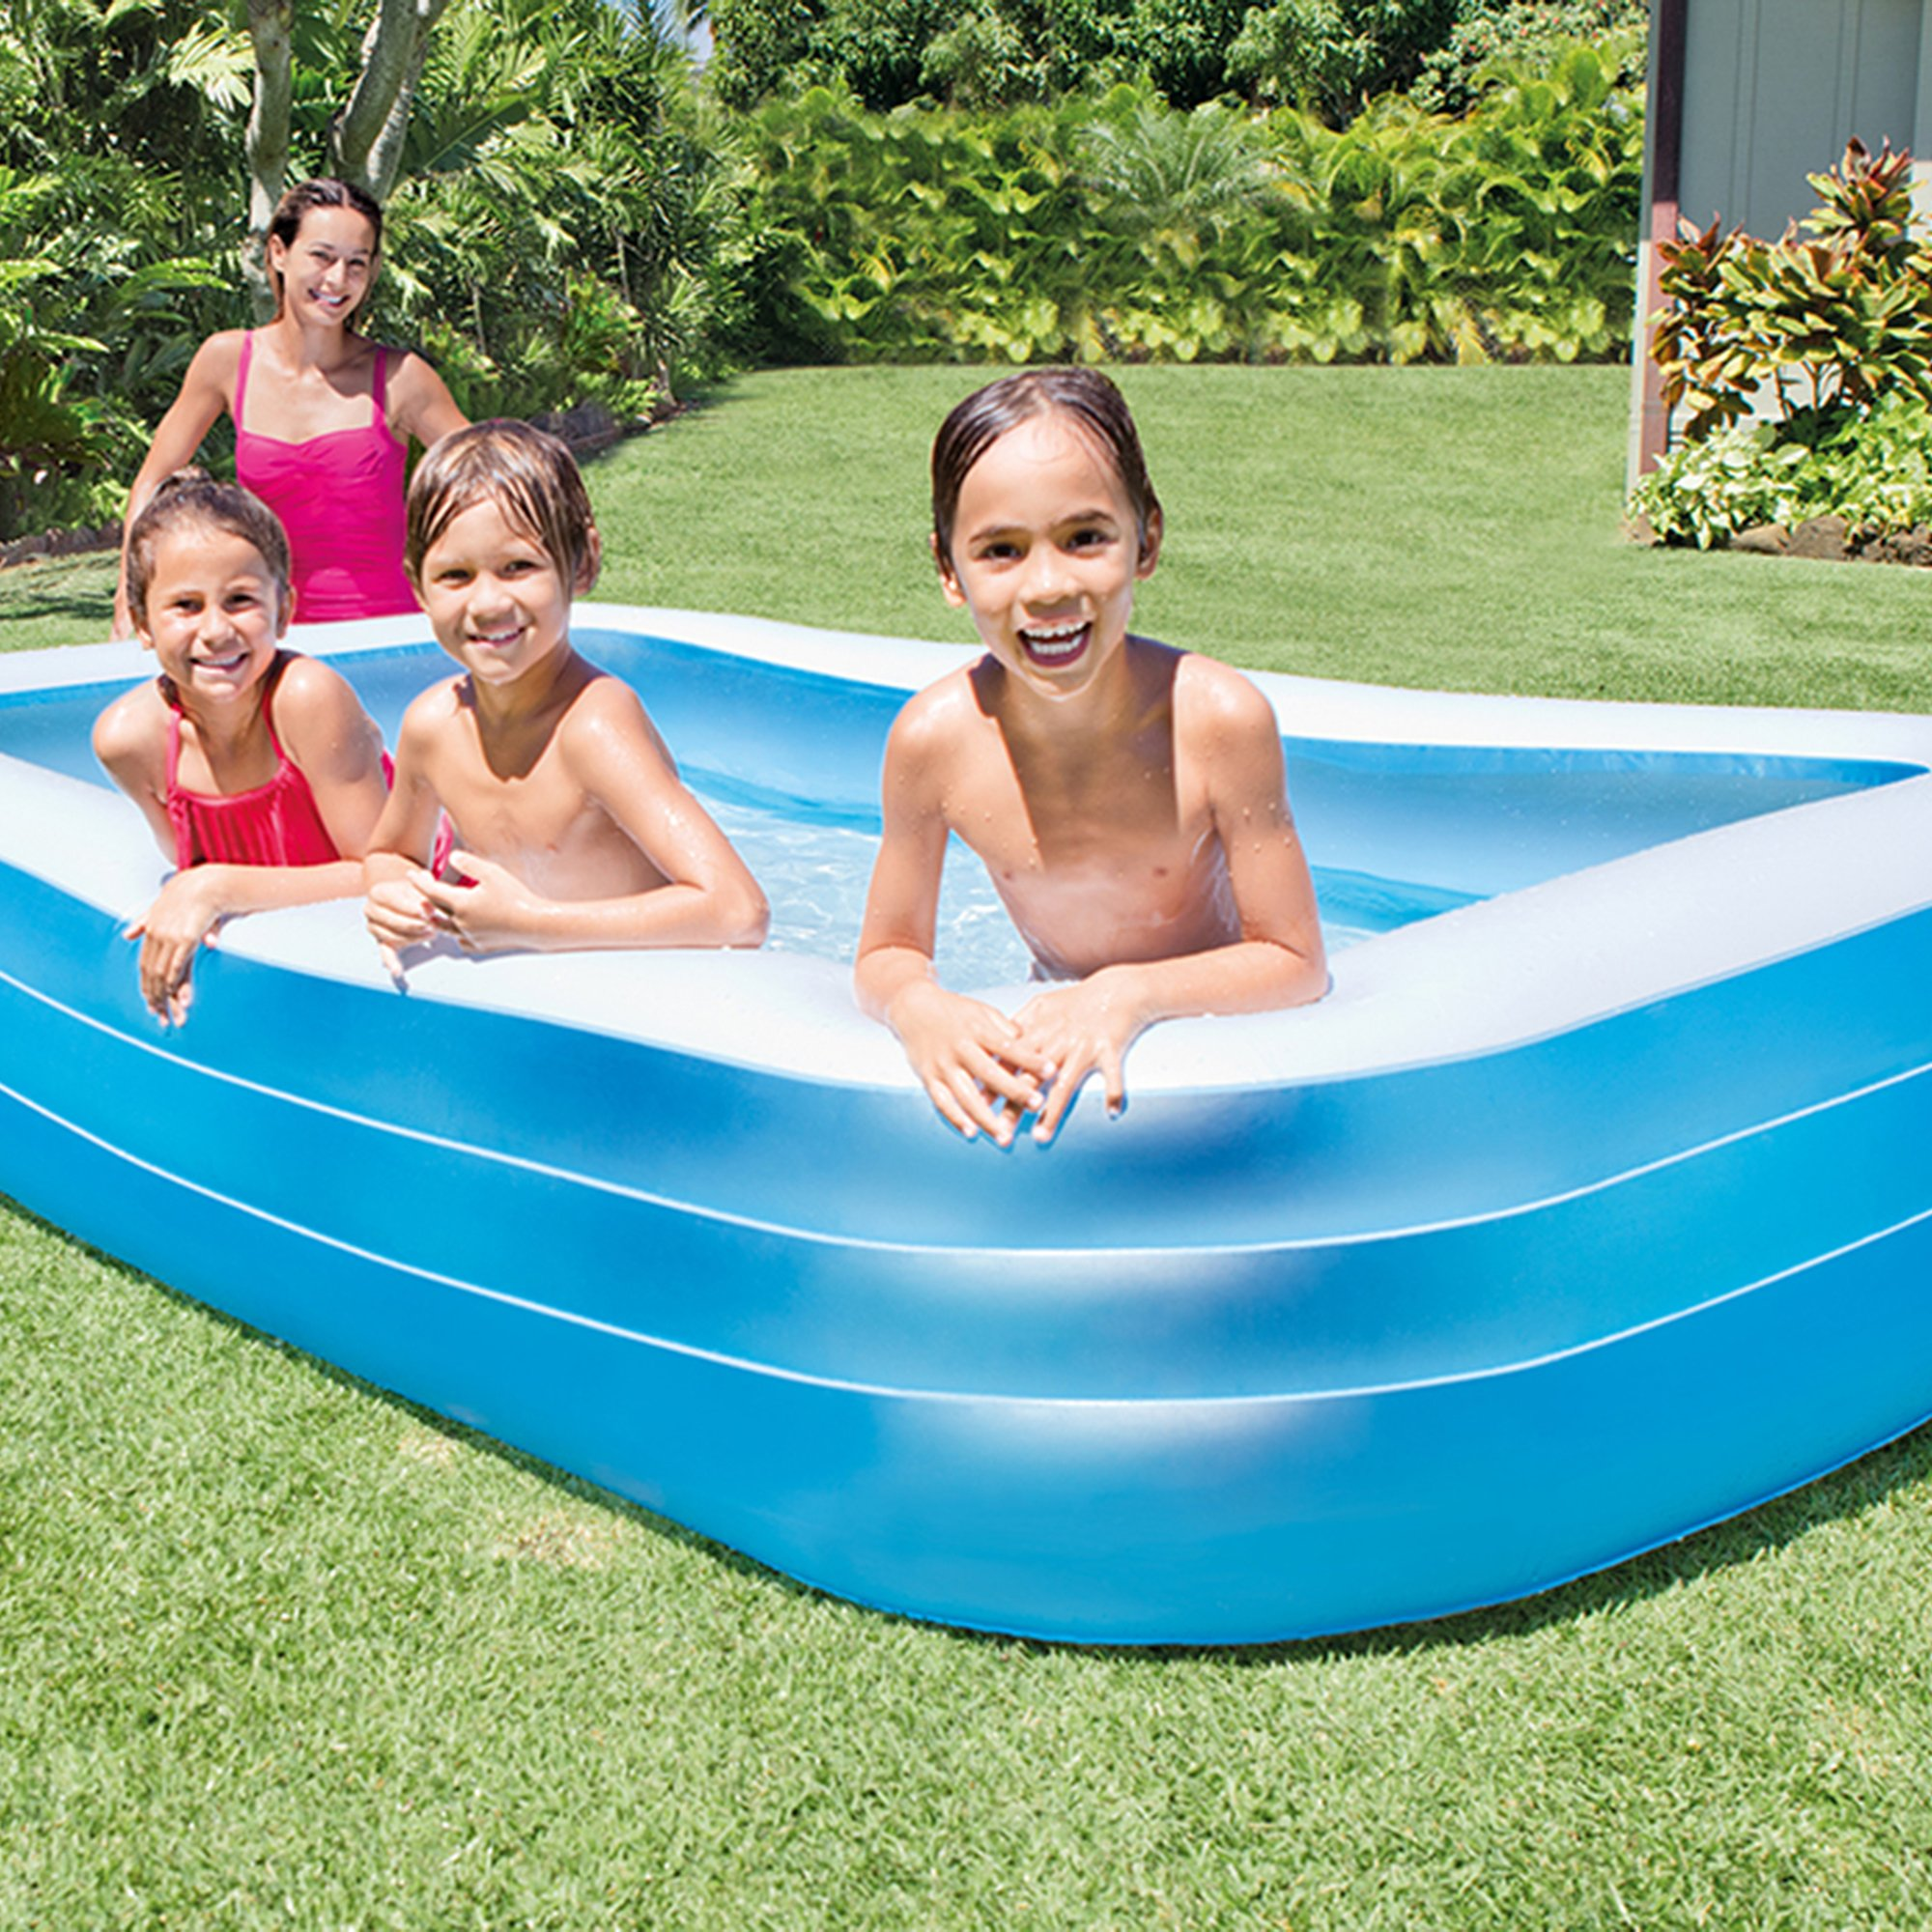 Intex Swim Center Family 72 x 120 Inch Swimming Pool and Quick Fill Air Pump by Intex (Image #4)